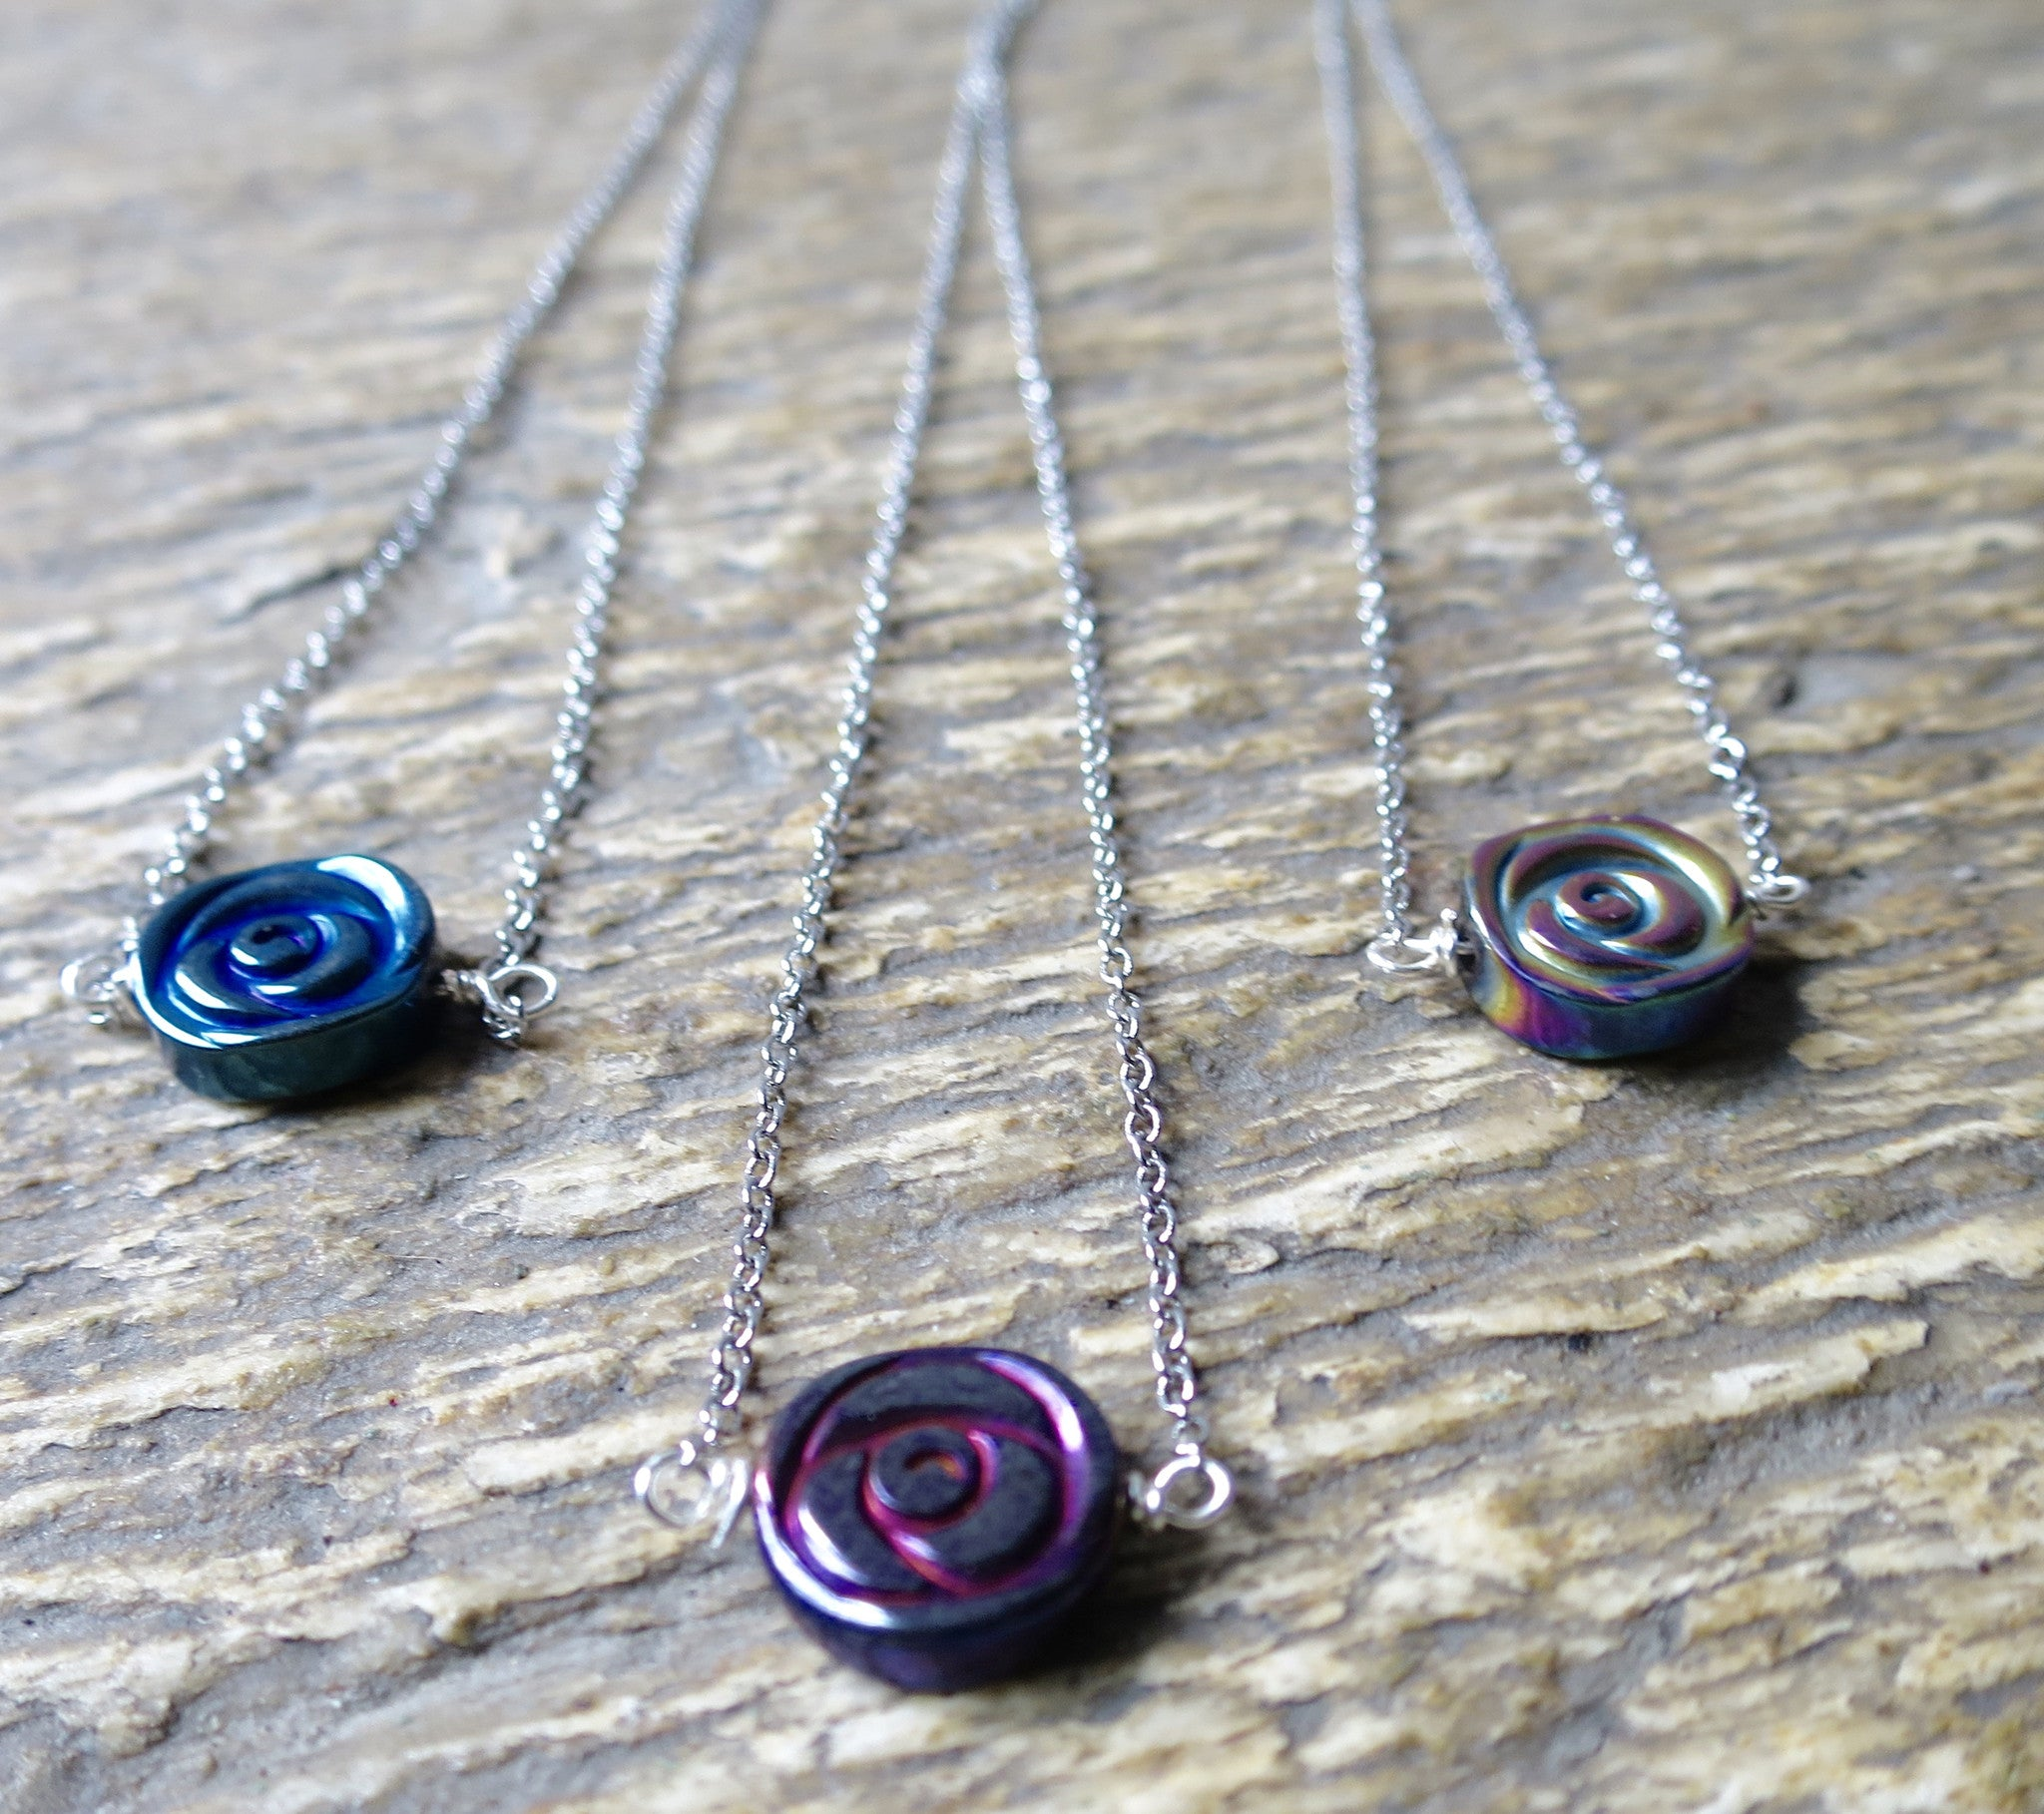 Hematite Rose  Necklace - Pretty Princess Style  - 3